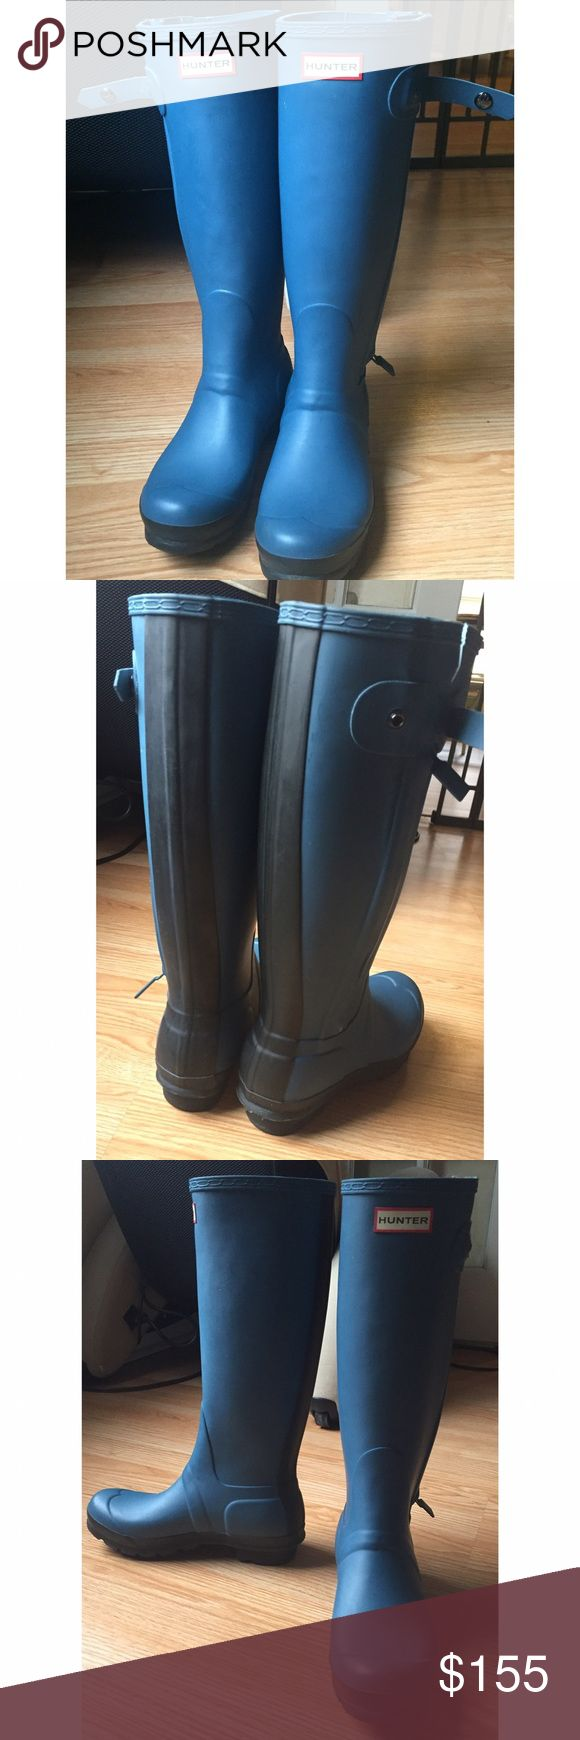 Hunter rain boots, blue hunter rain boots These Hunter rain boots are light used without box   Size : 7 EUC worn one or two times  Color: blue  These boots were bought directly in Australia   Tags for search :  hunter boots, Hunter rain boots, hunter blue boots, hunter blue rain boots, rain boots, winter boots, snow boots , blue boots , winter boots Hunter Shoes Winter & Rain Boots